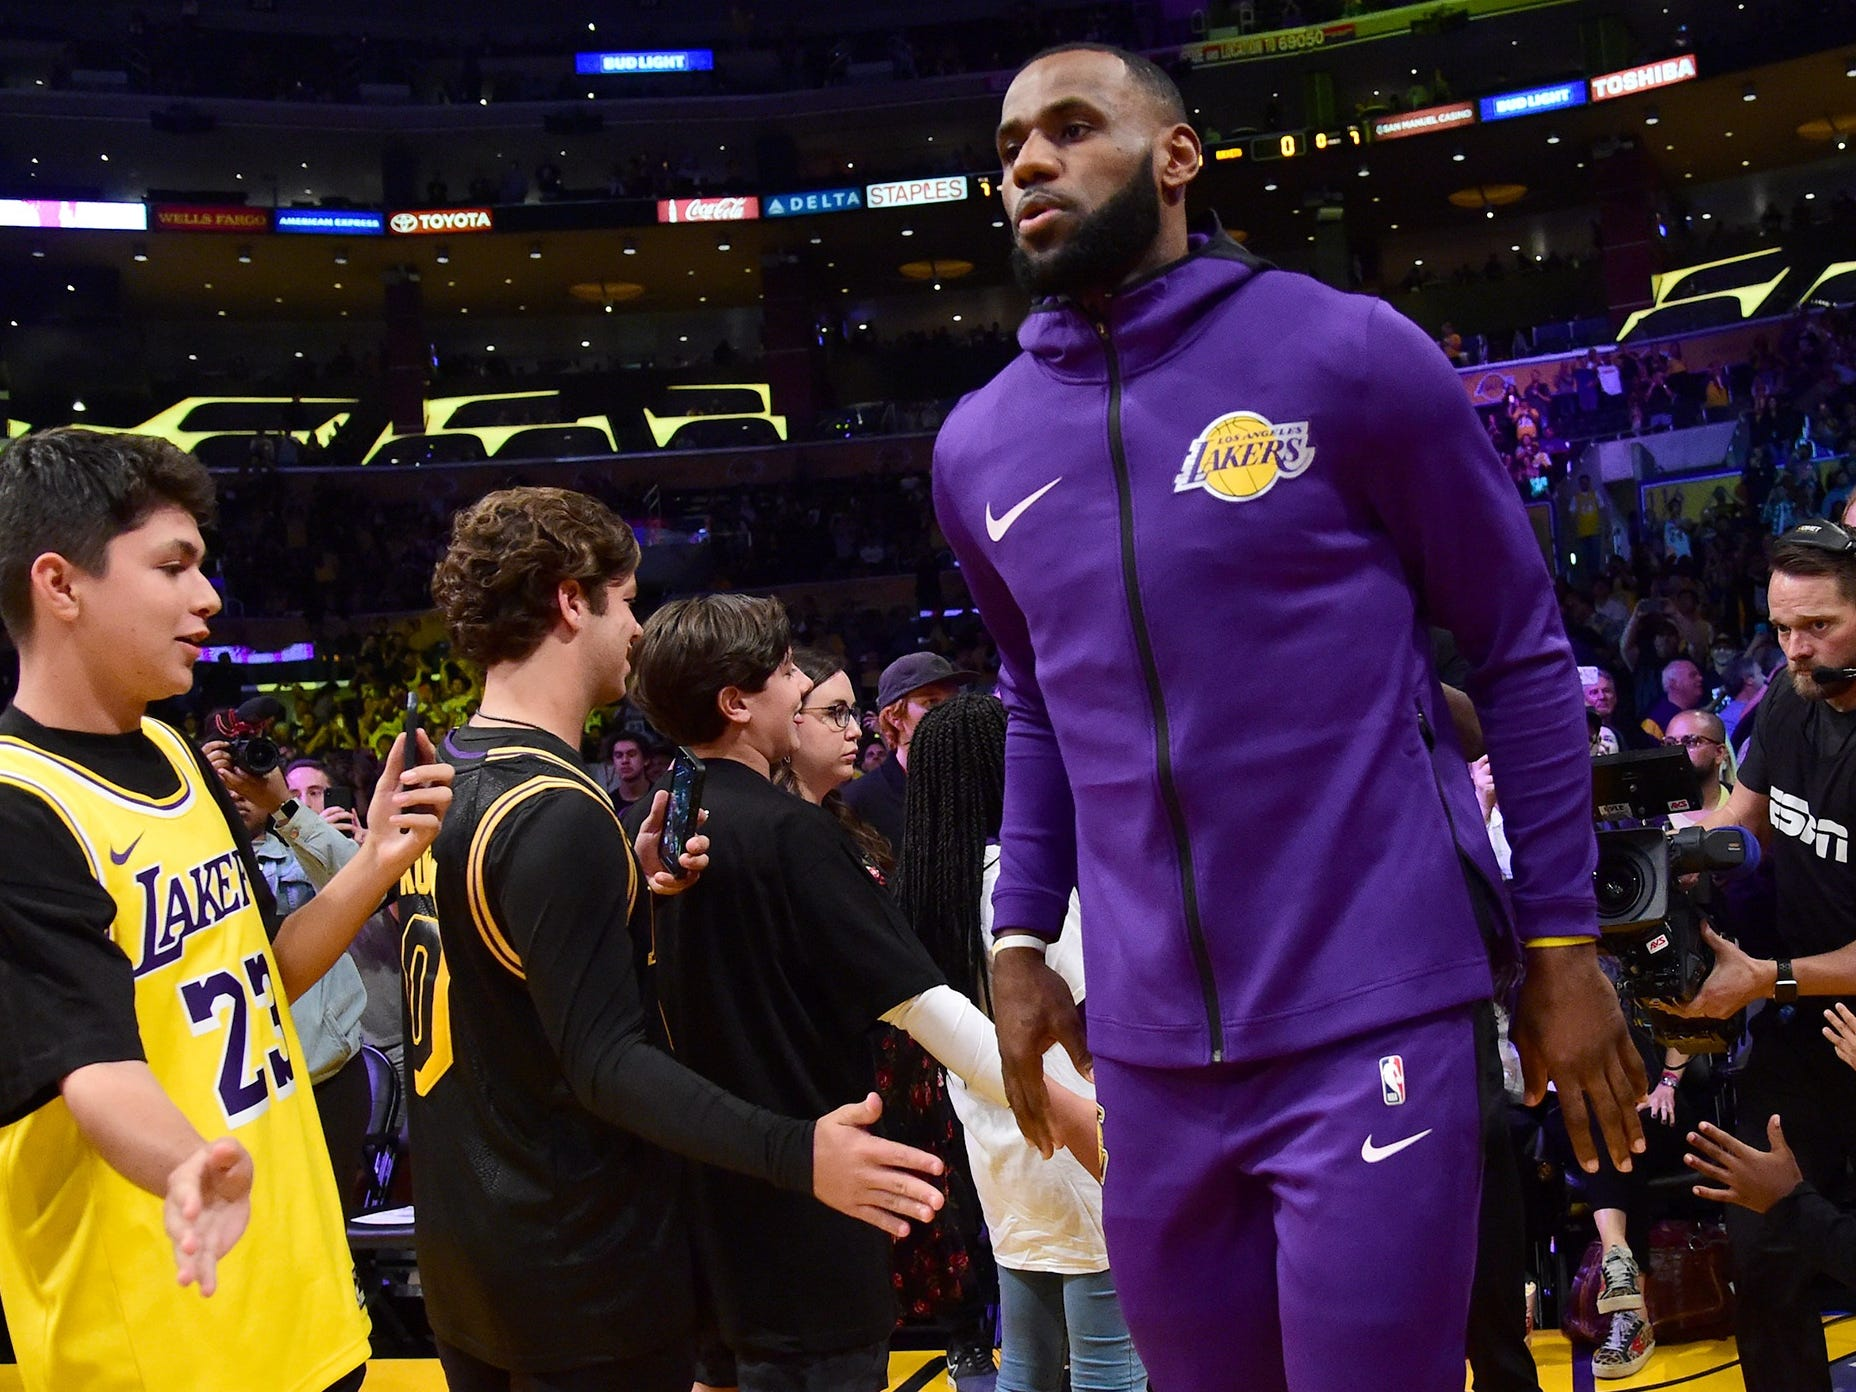 Oct. 20, 2018: LeBron James takes the court for his Lakers home debut against the Rockets at Staples Center.